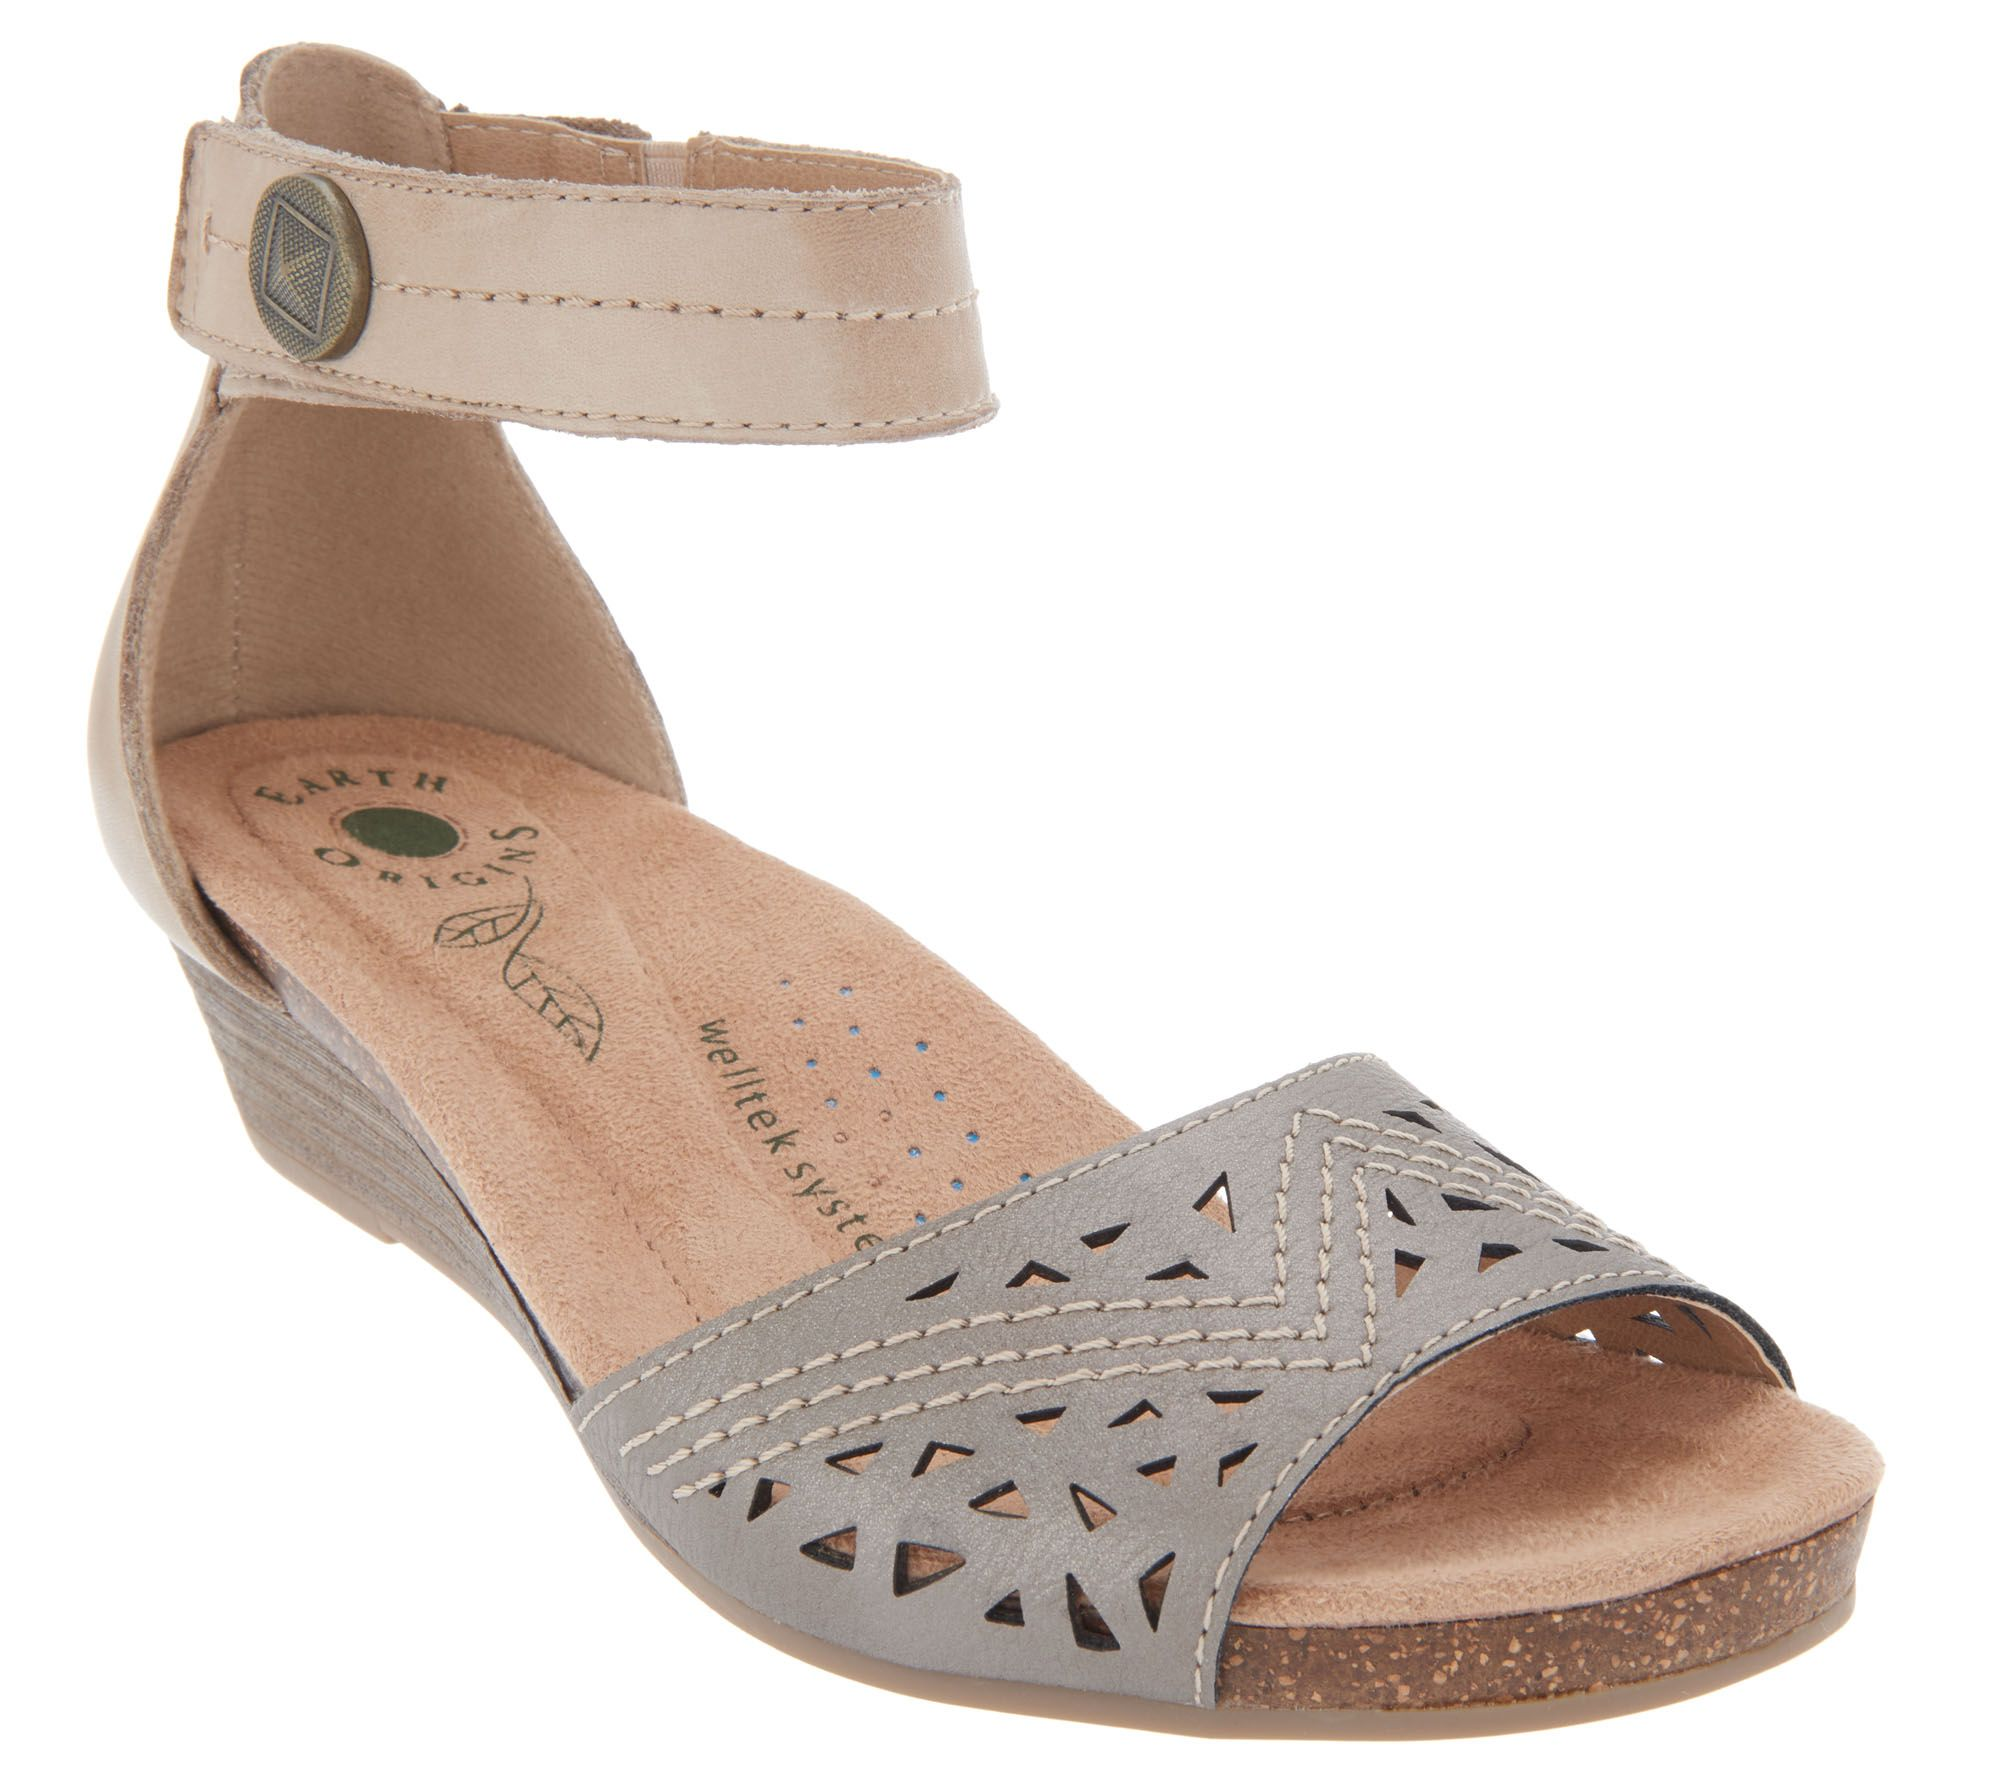 64e25378c77c5a Earth Origins Wedge Sandals with Ankle Strap - Honey - Page 1 — QVC.com